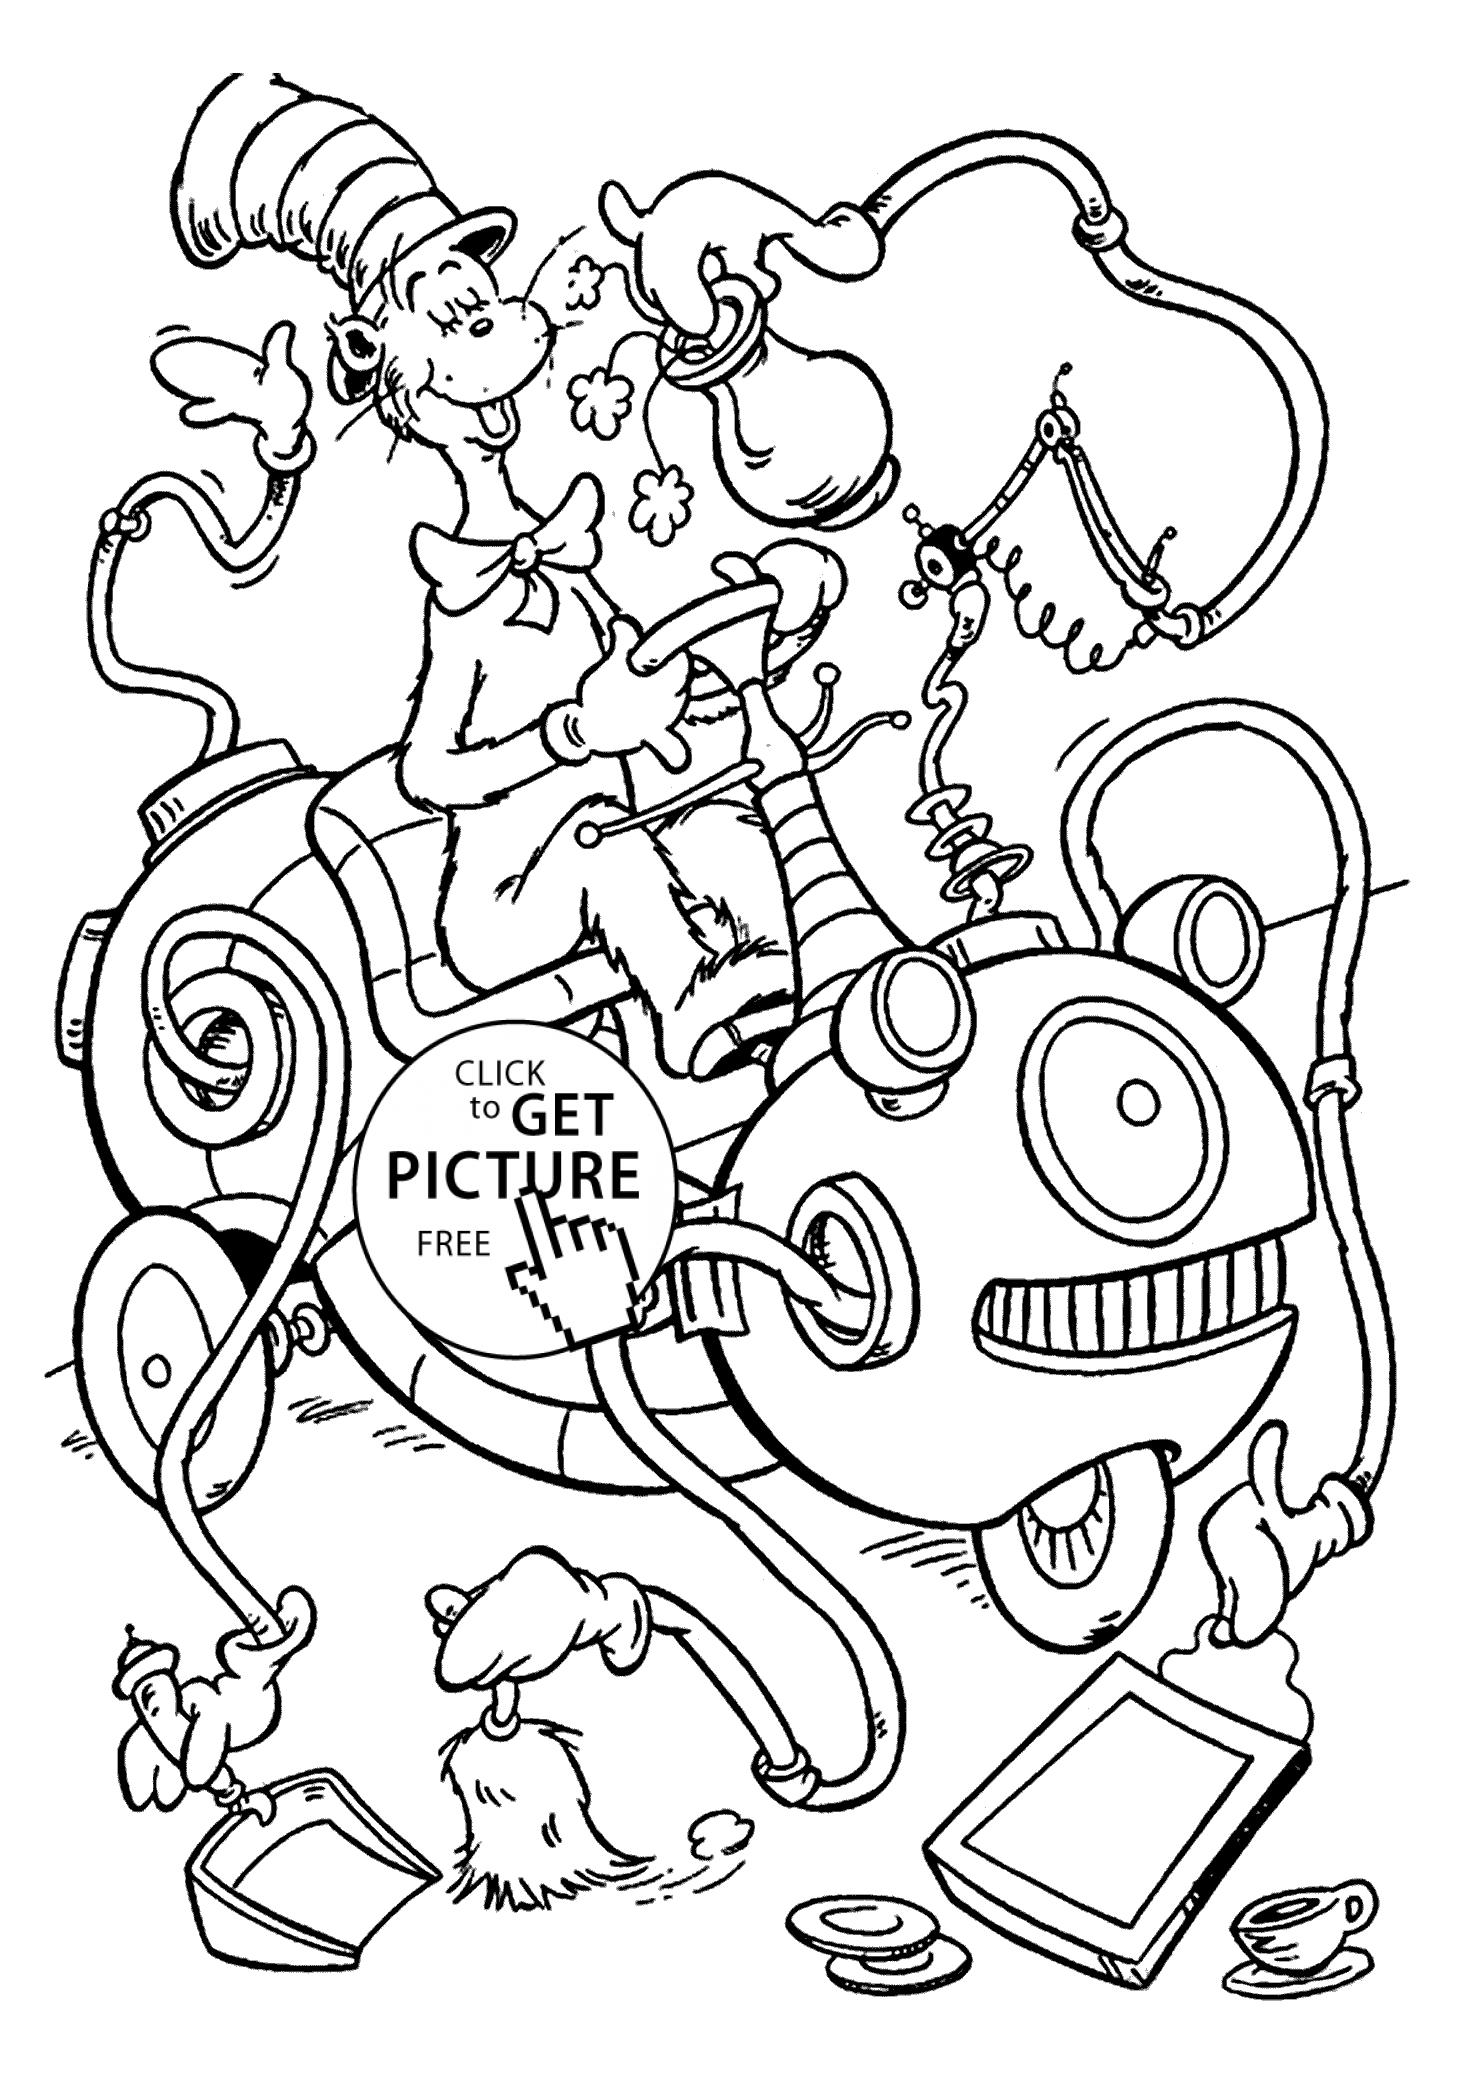 happy birthday dr seuss coloring sheets ; 14-dr-seuss-coloring-page